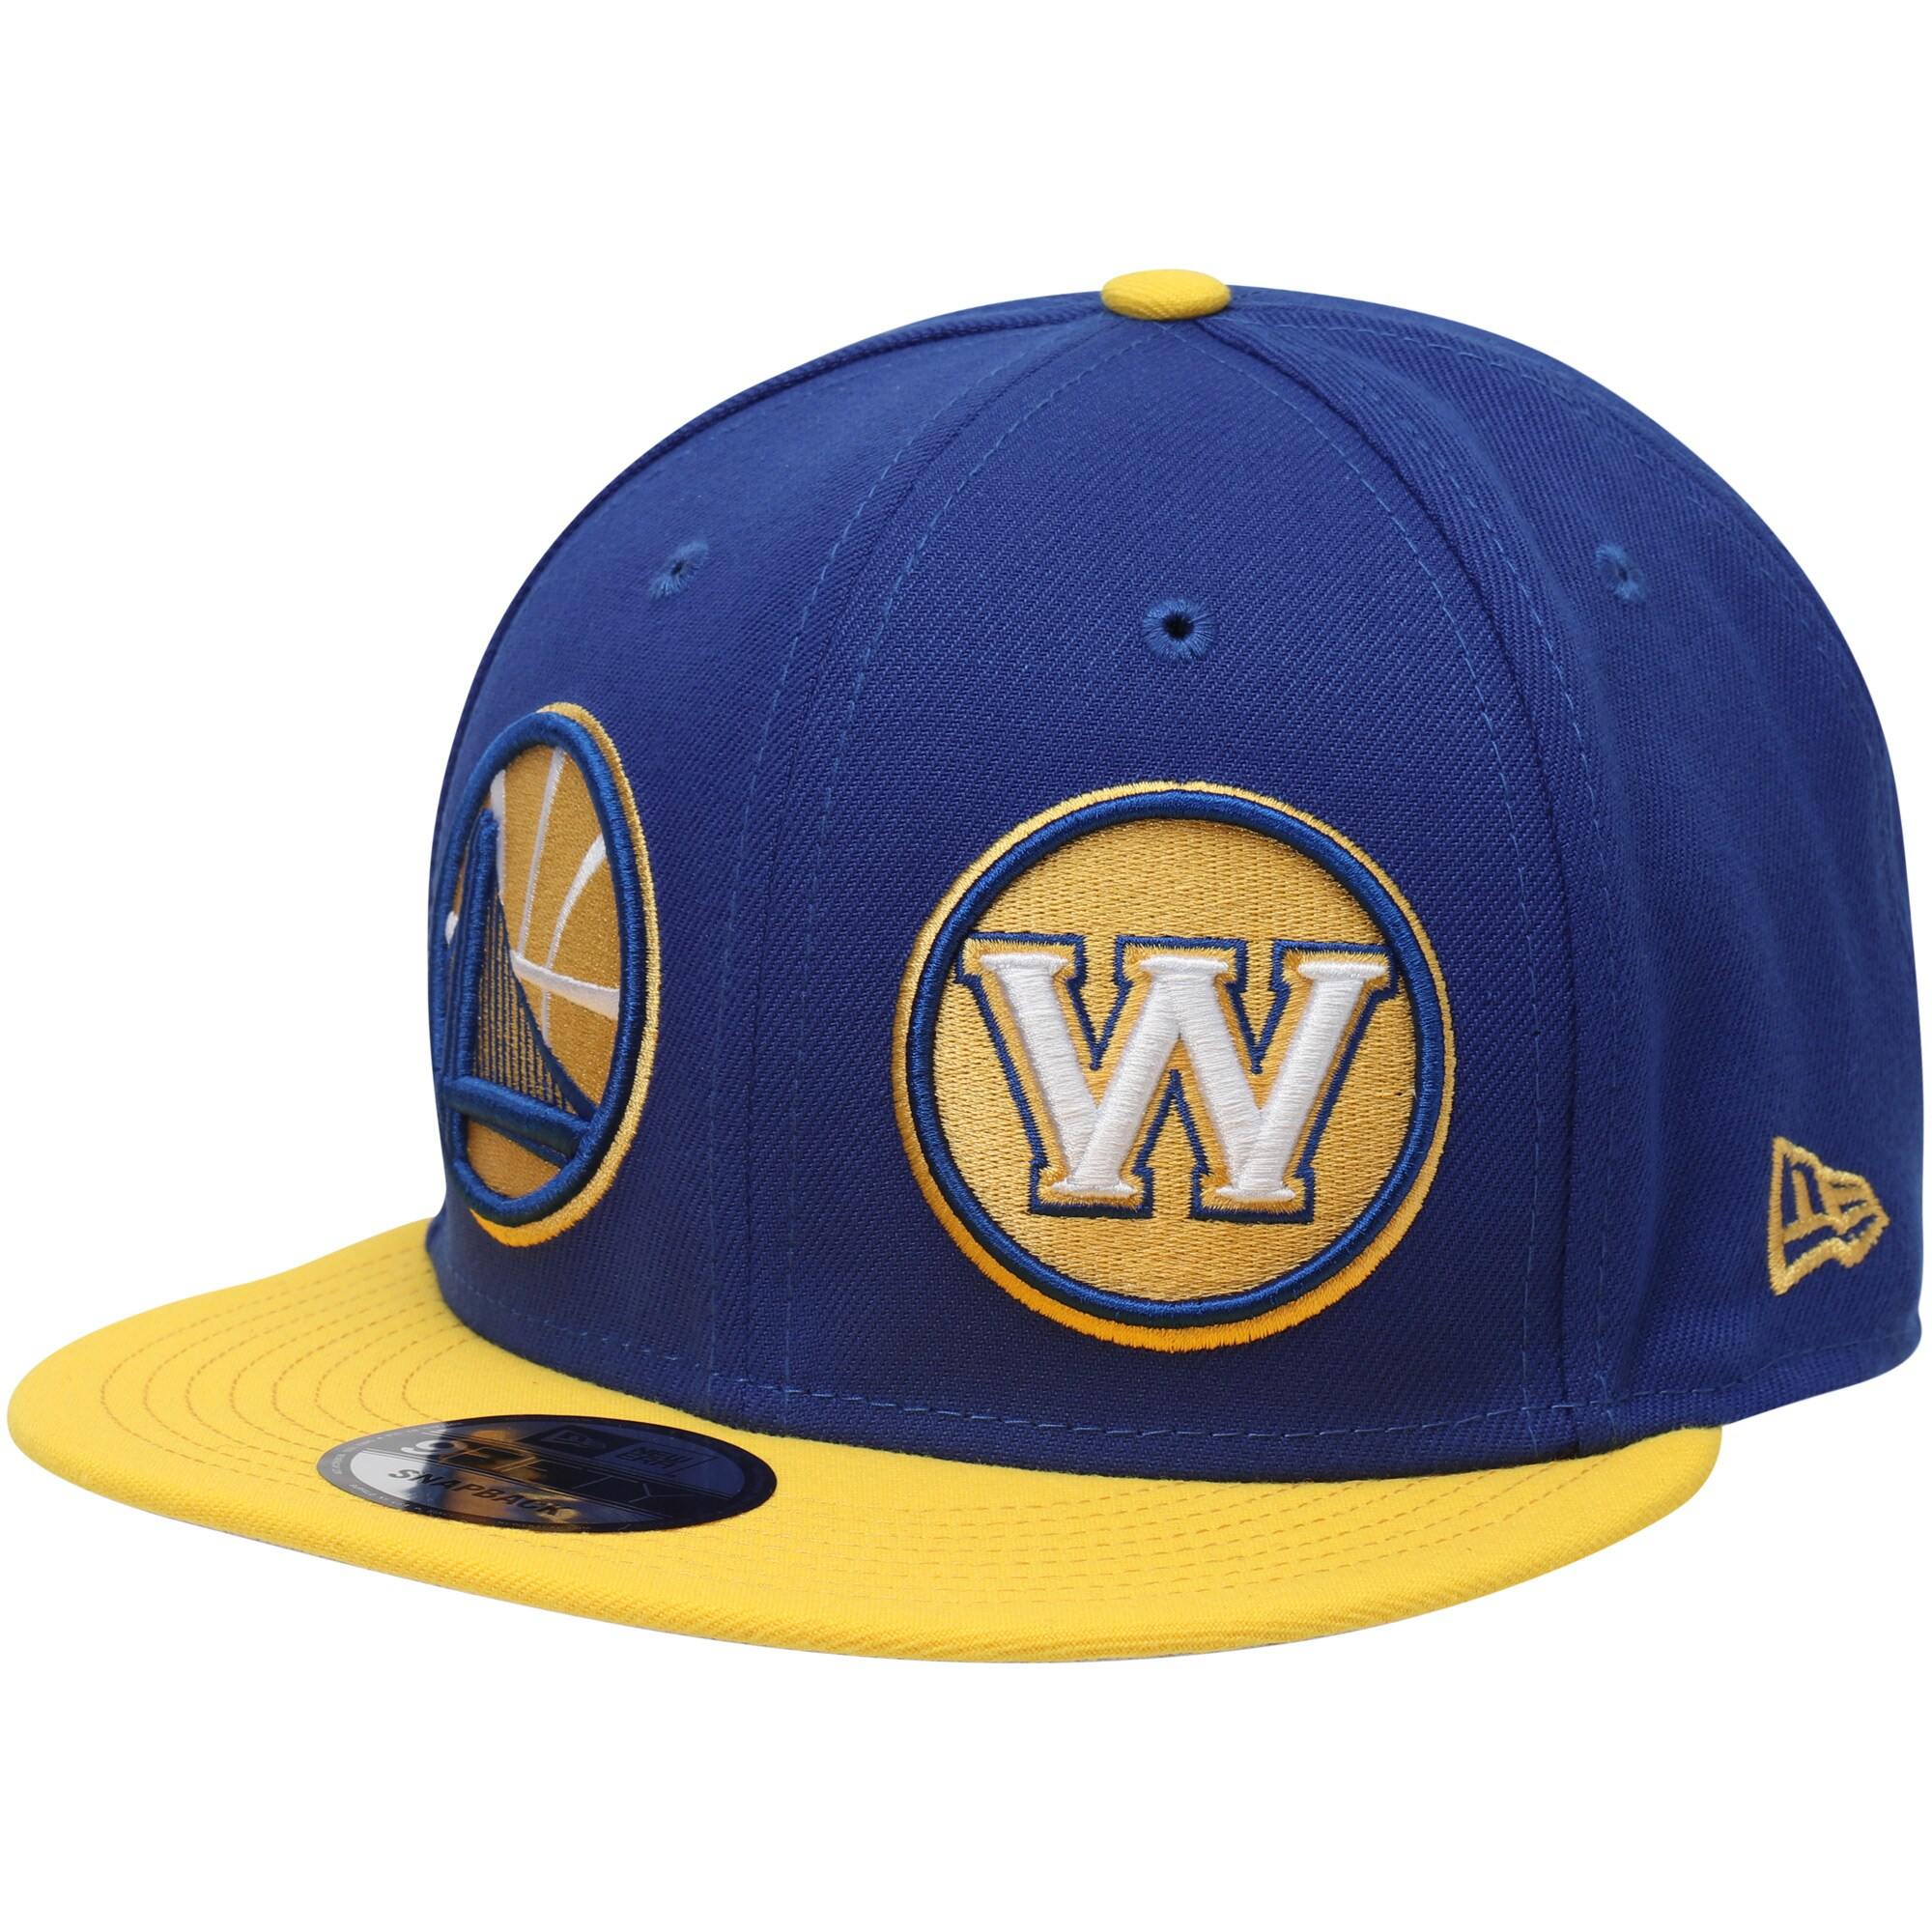 Golden State Warriors New Era Y2K Double Whammy 9FIFTY Adjustable Snapback Hat - Royal/Gold